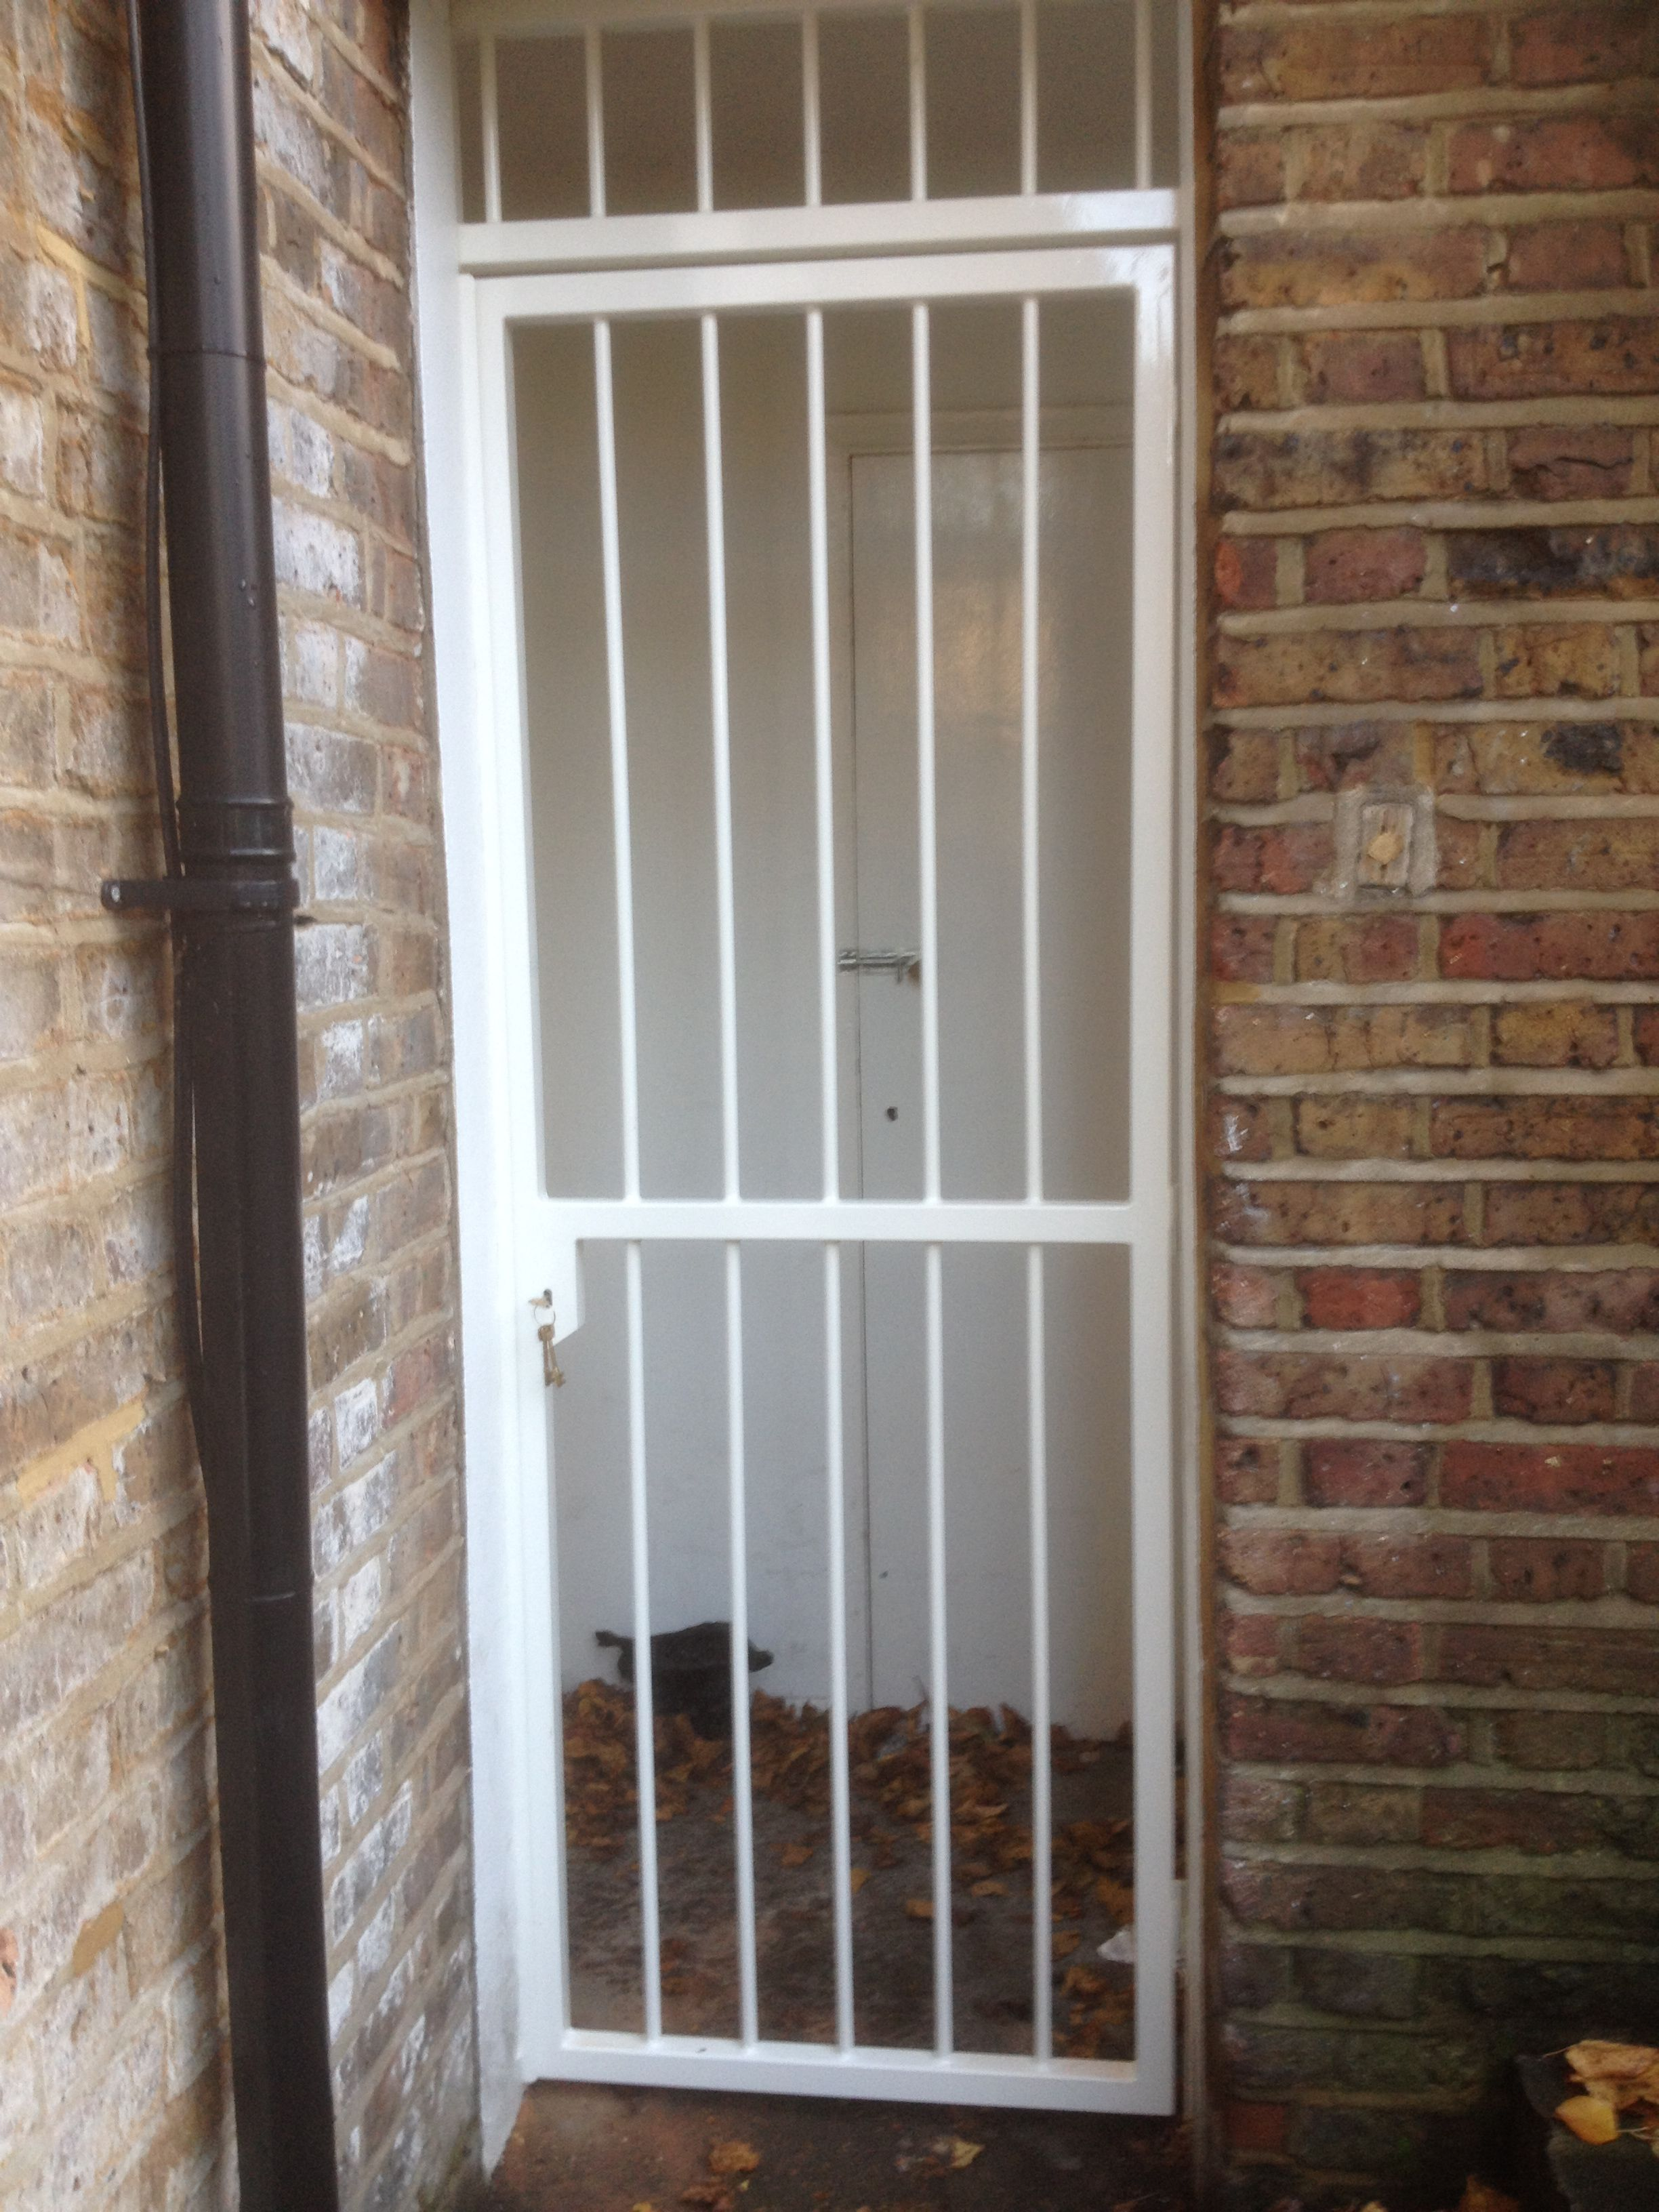 rsg3000 security door gates fitted to the back opening of a ground flat in central london